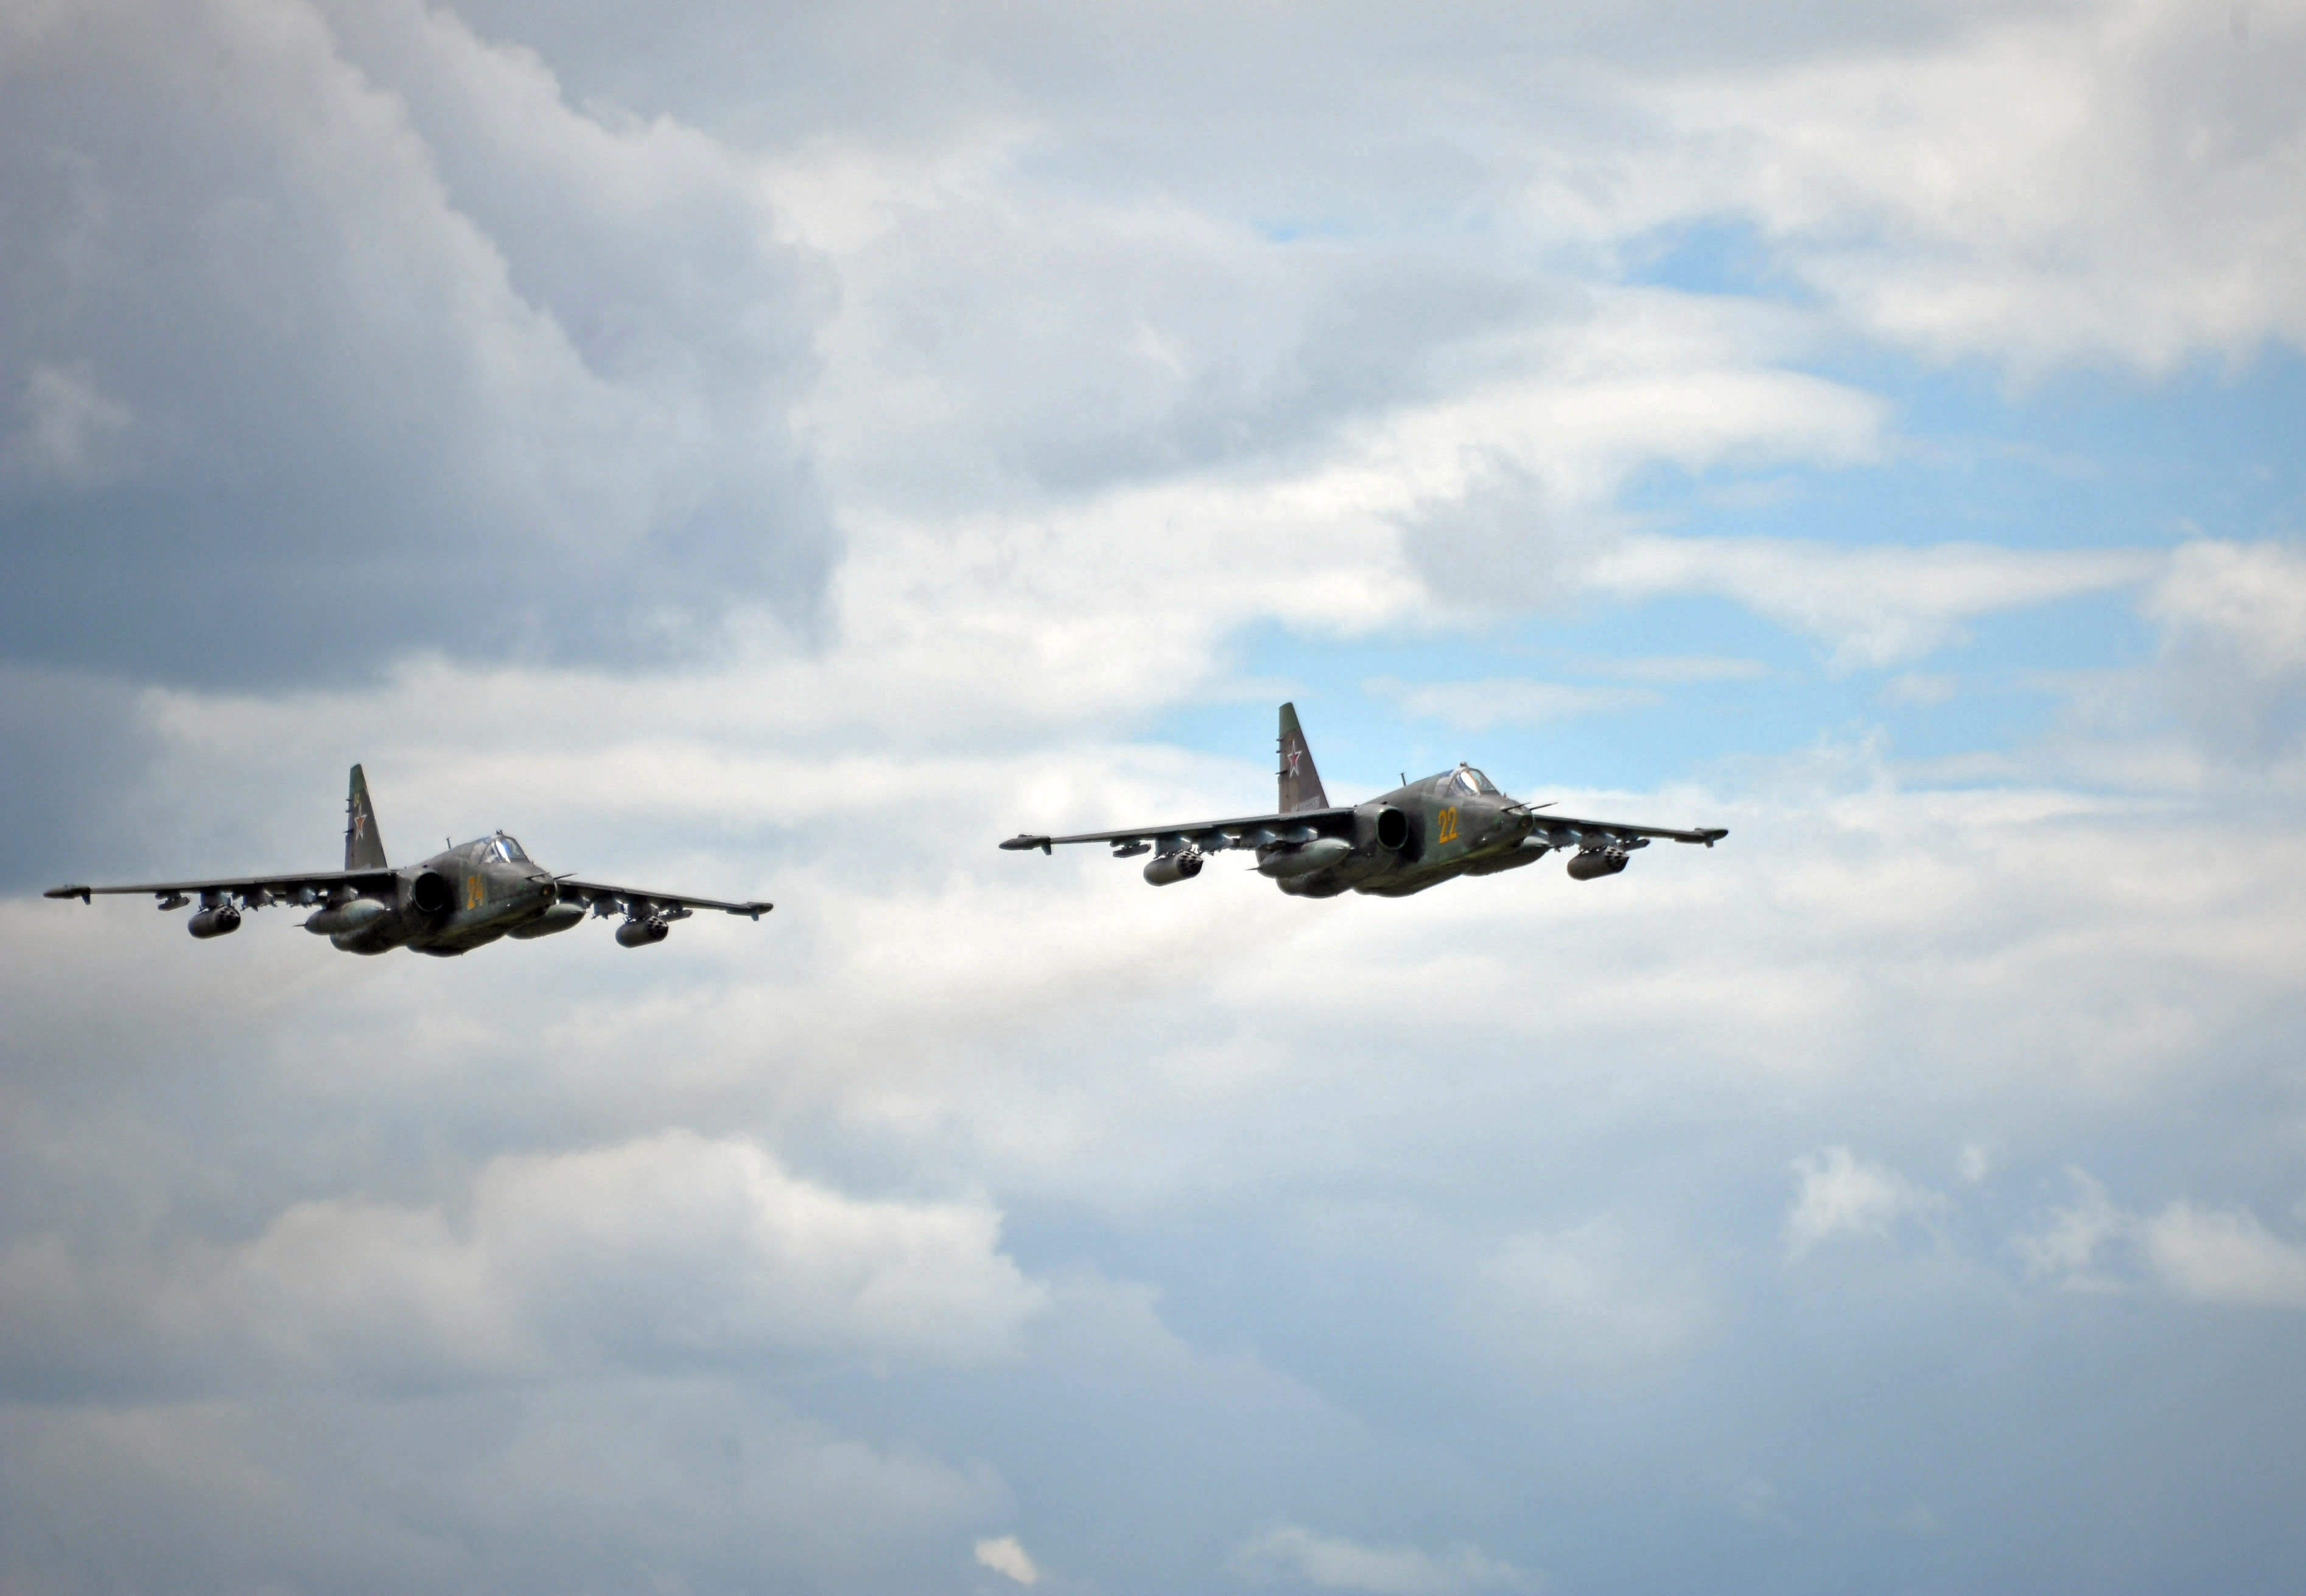 Russian Army Su-25 jet fighters fly near the Baikal Lake in Russis on Wednesday, July 17, 2013. Russia has launched its biggest military maneuvers since Soviet times, involving 160,000 troops and about 5,000 tanks across Siberia and the far eastern region. (AP Photo/RIA Novosti, Alexei Nikolsky, Presidential Press Service)